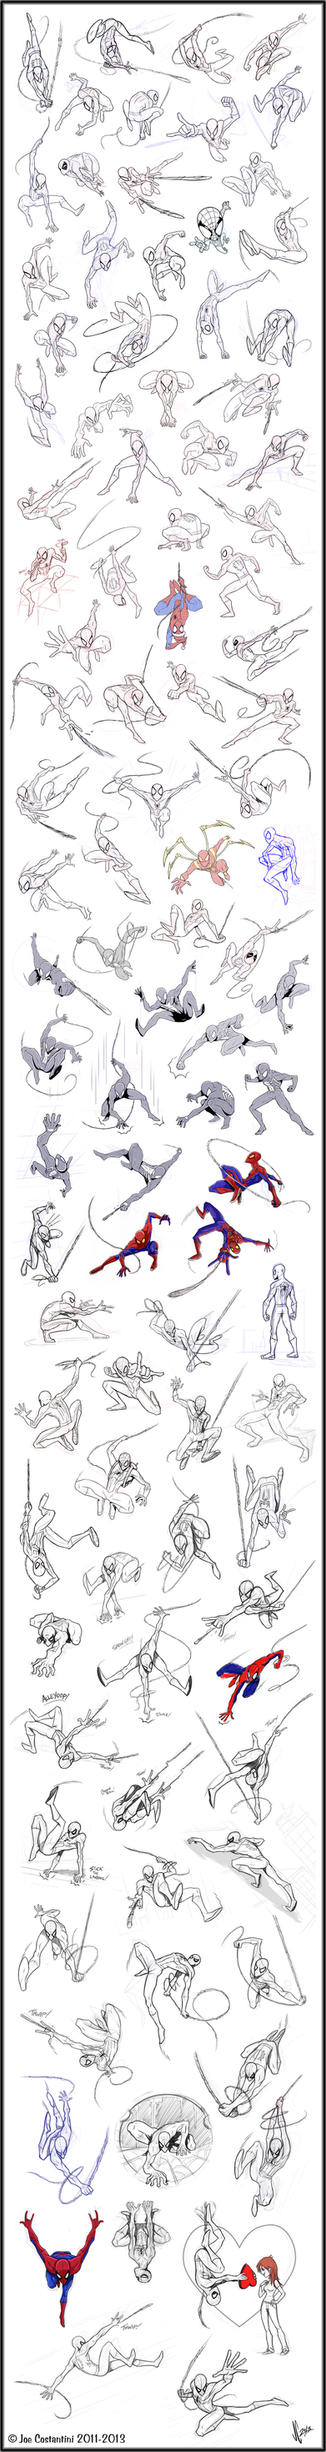 100 Spidey Poses by JoeCostantini